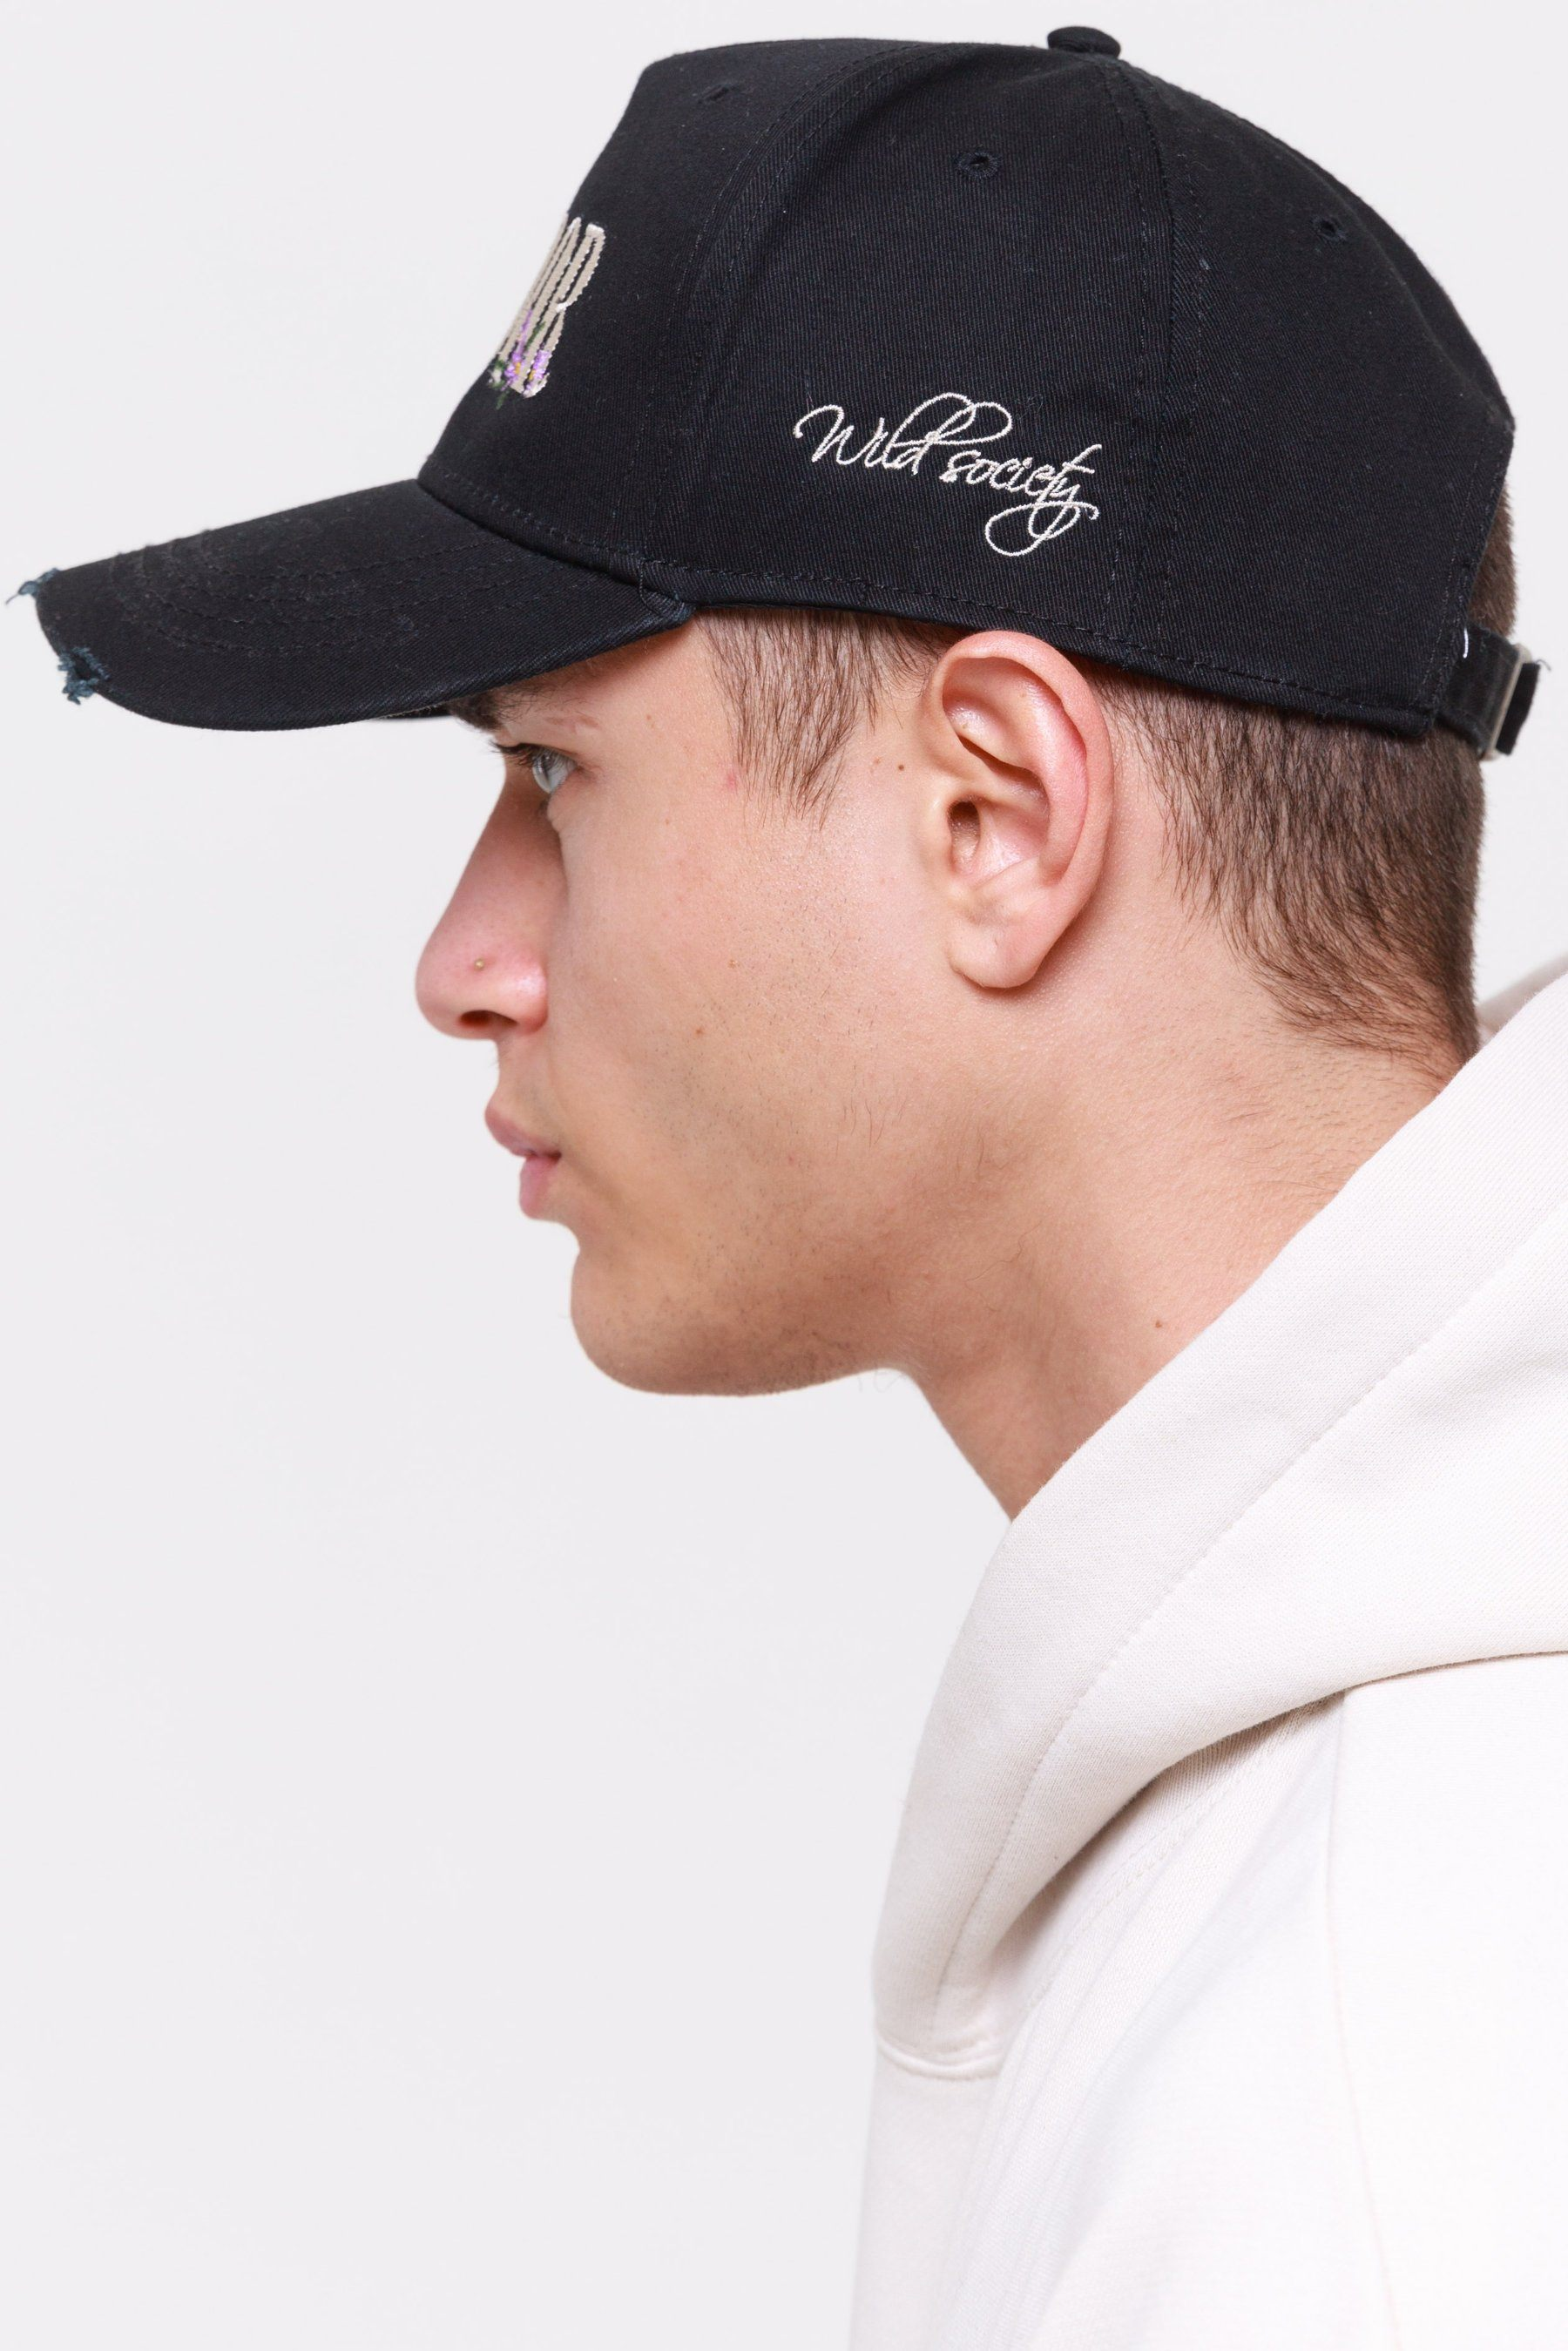 Embroidery Destroyed Cap Black Headwear Wild Society